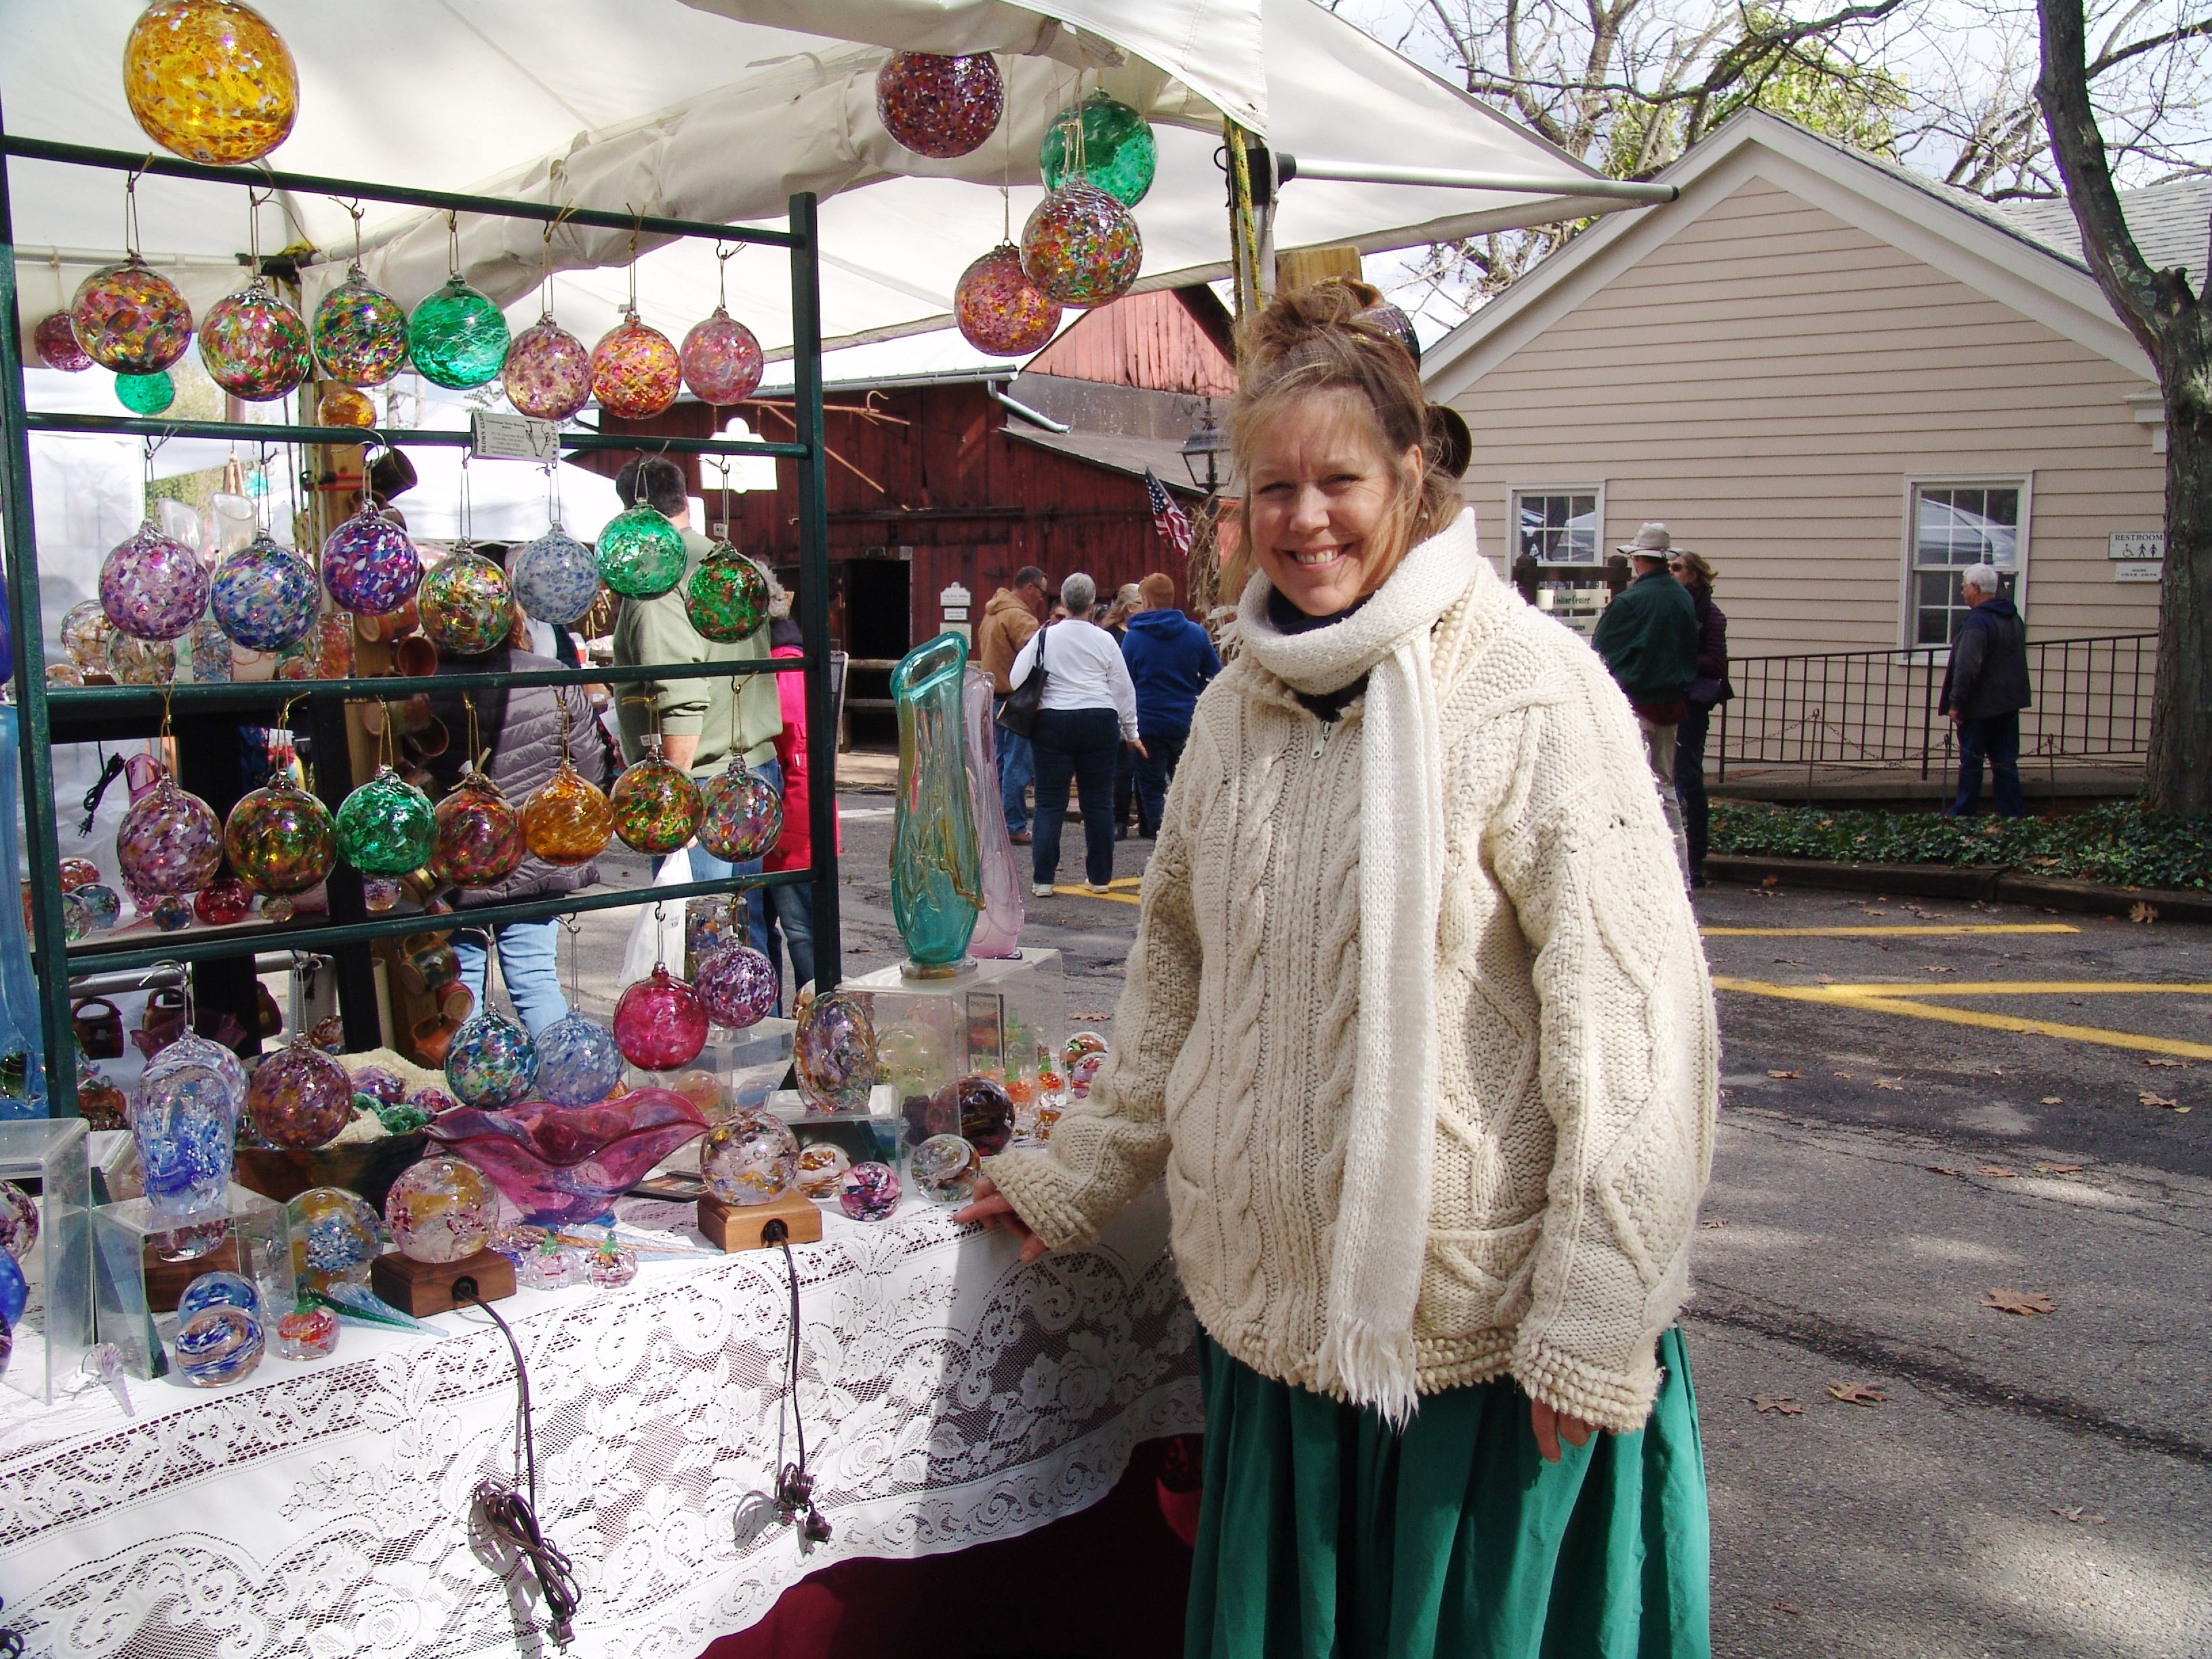 Cathy Tietz Boring poses by her booth during this year's Apple Butter Stirrin' Festival.